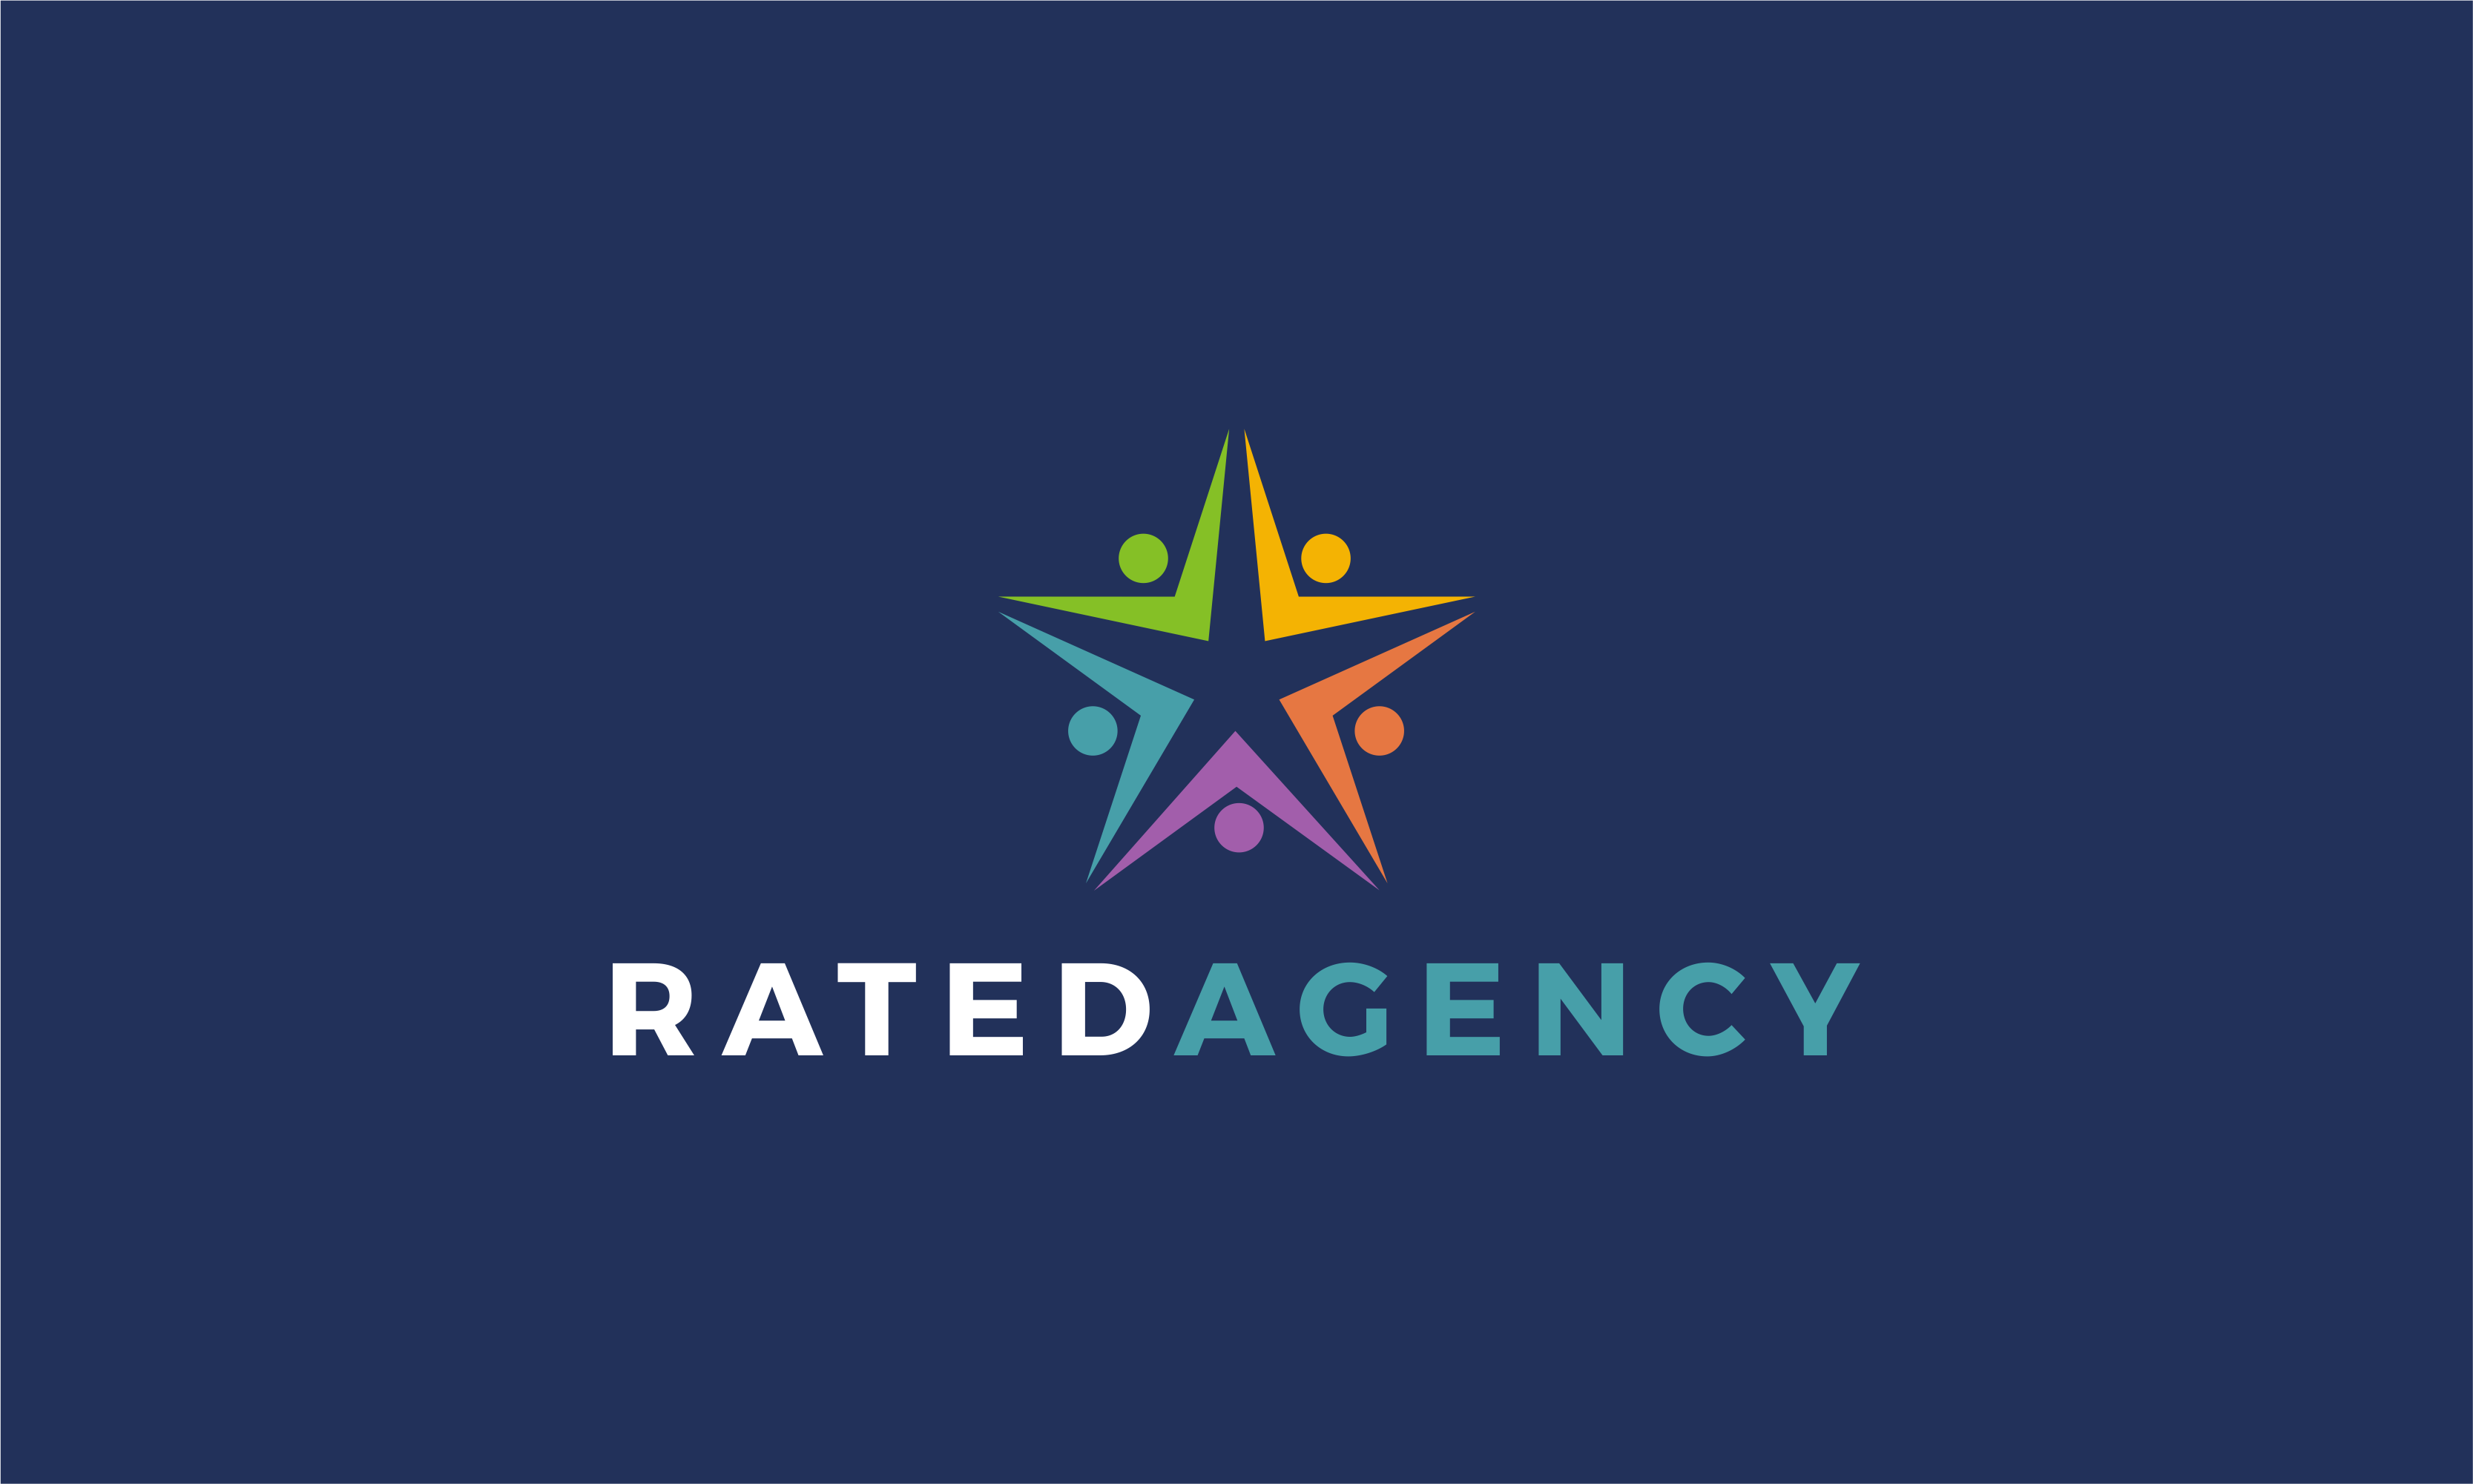 Ratedagency